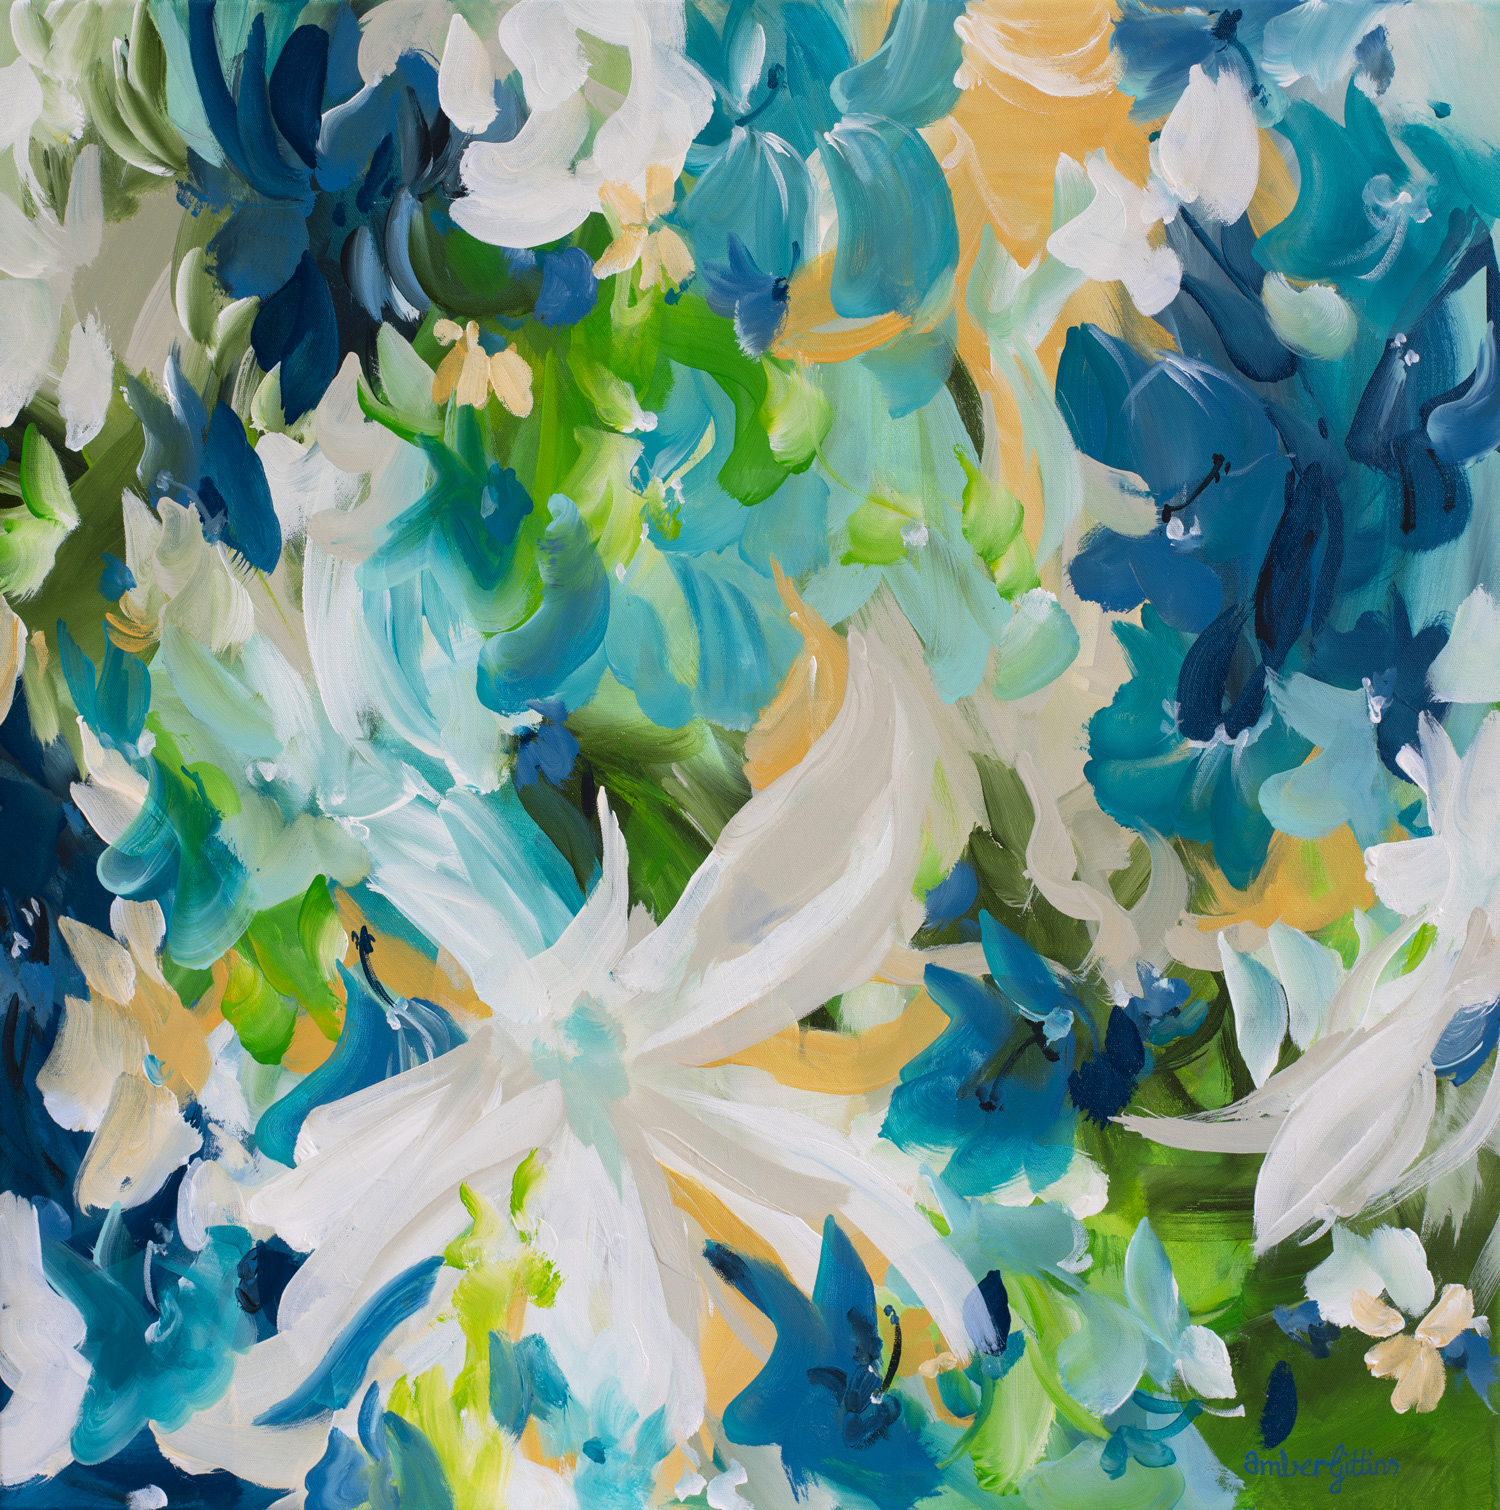 Blue Hibiscus Abstract Floral Painting By Amber Gittins